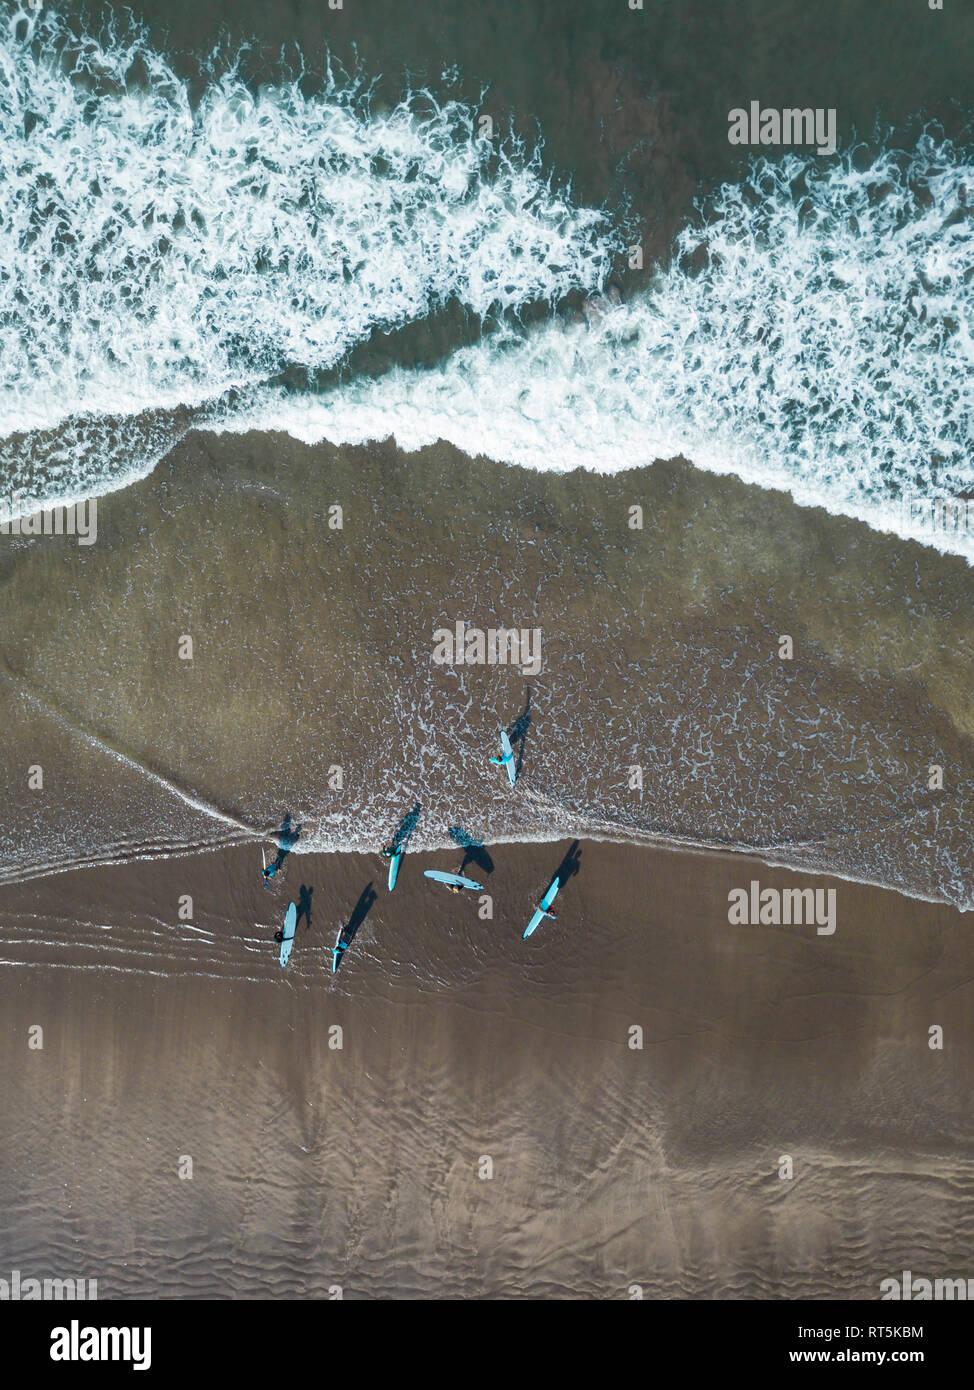 Indonesia, Bali, Kuta beach, surfers - Stock Image